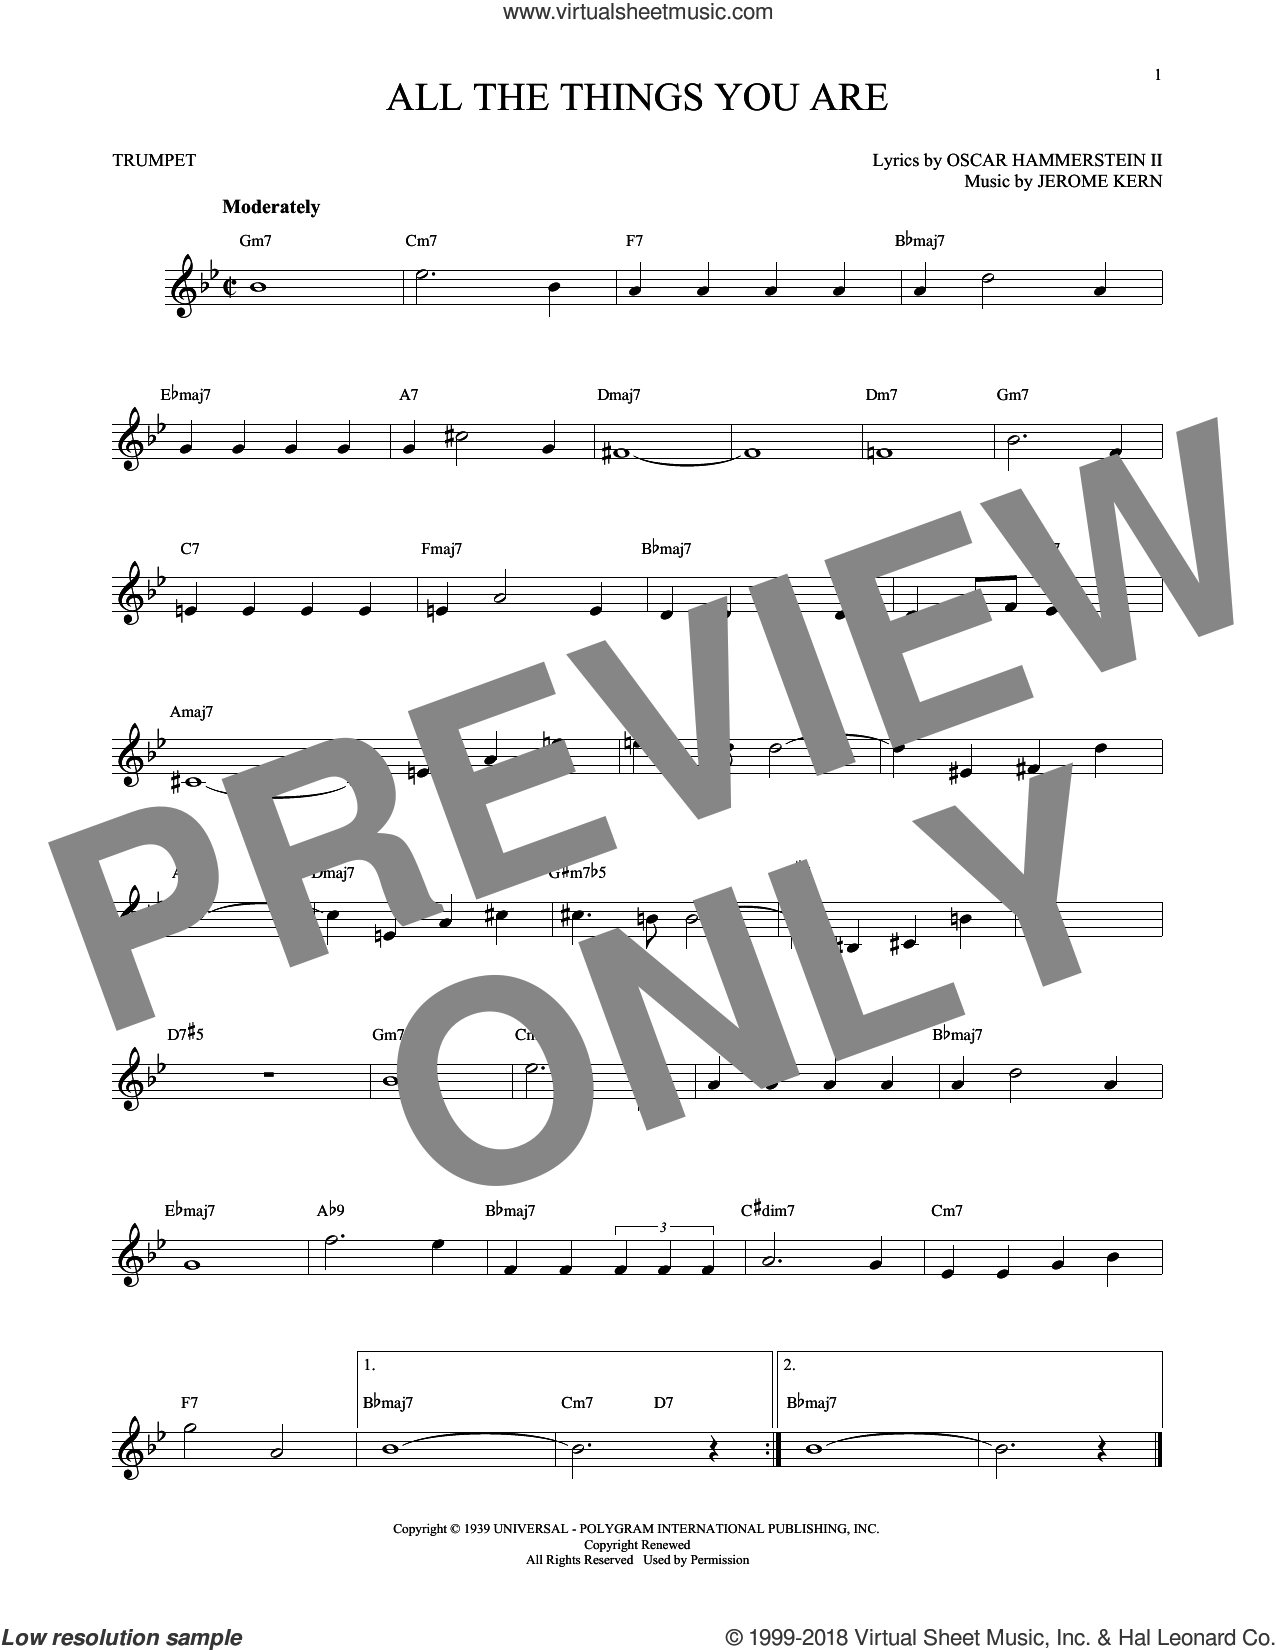 All The Things You Are sheet music for trumpet solo by Oscar II Hammerstein, Jack Leonard with Tommy Dorsey Orchestra and Jerome Kern. Score Image Preview.